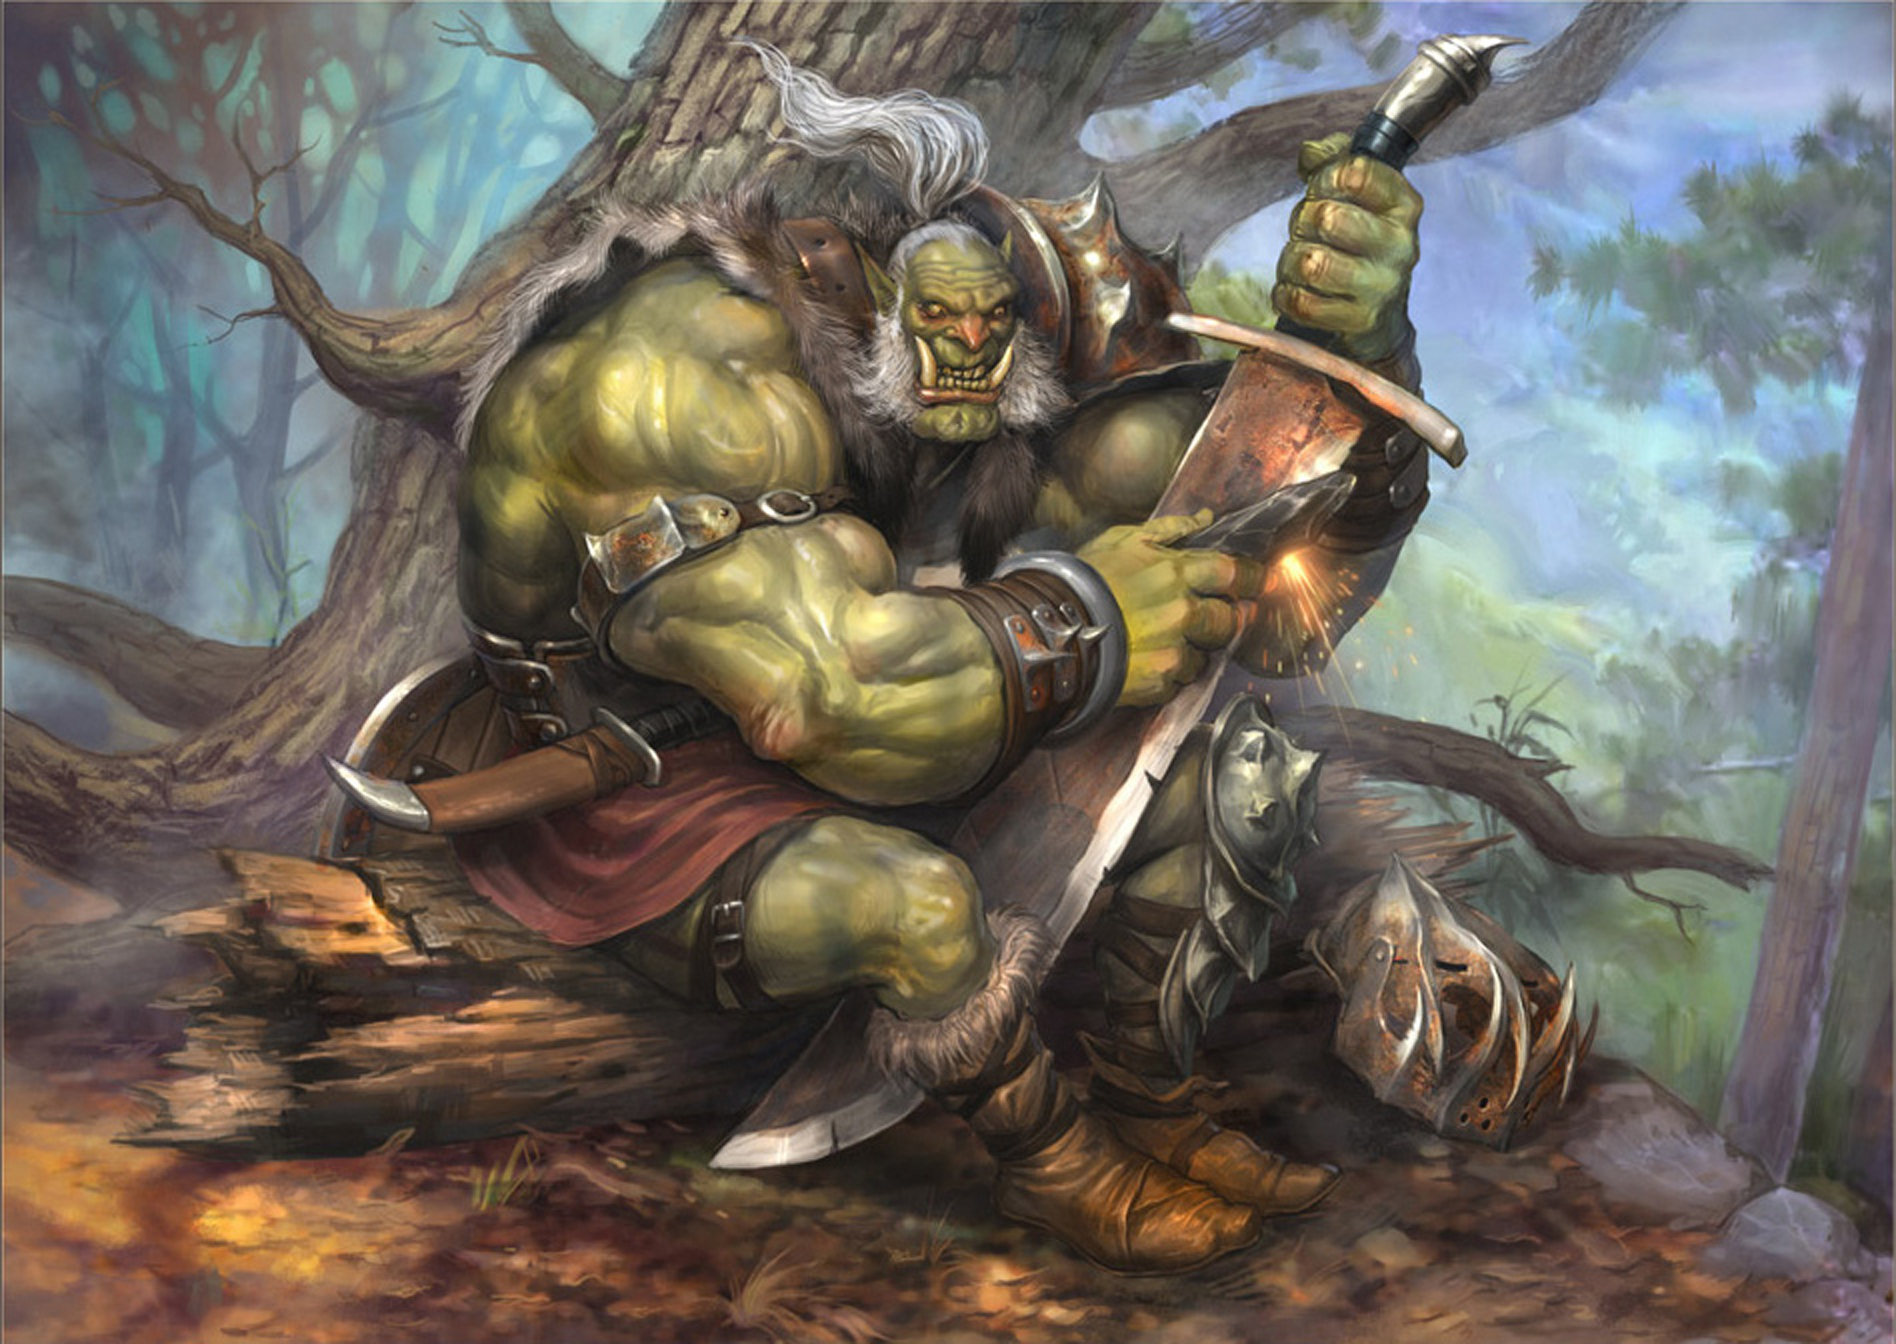 Orc art erotica photos